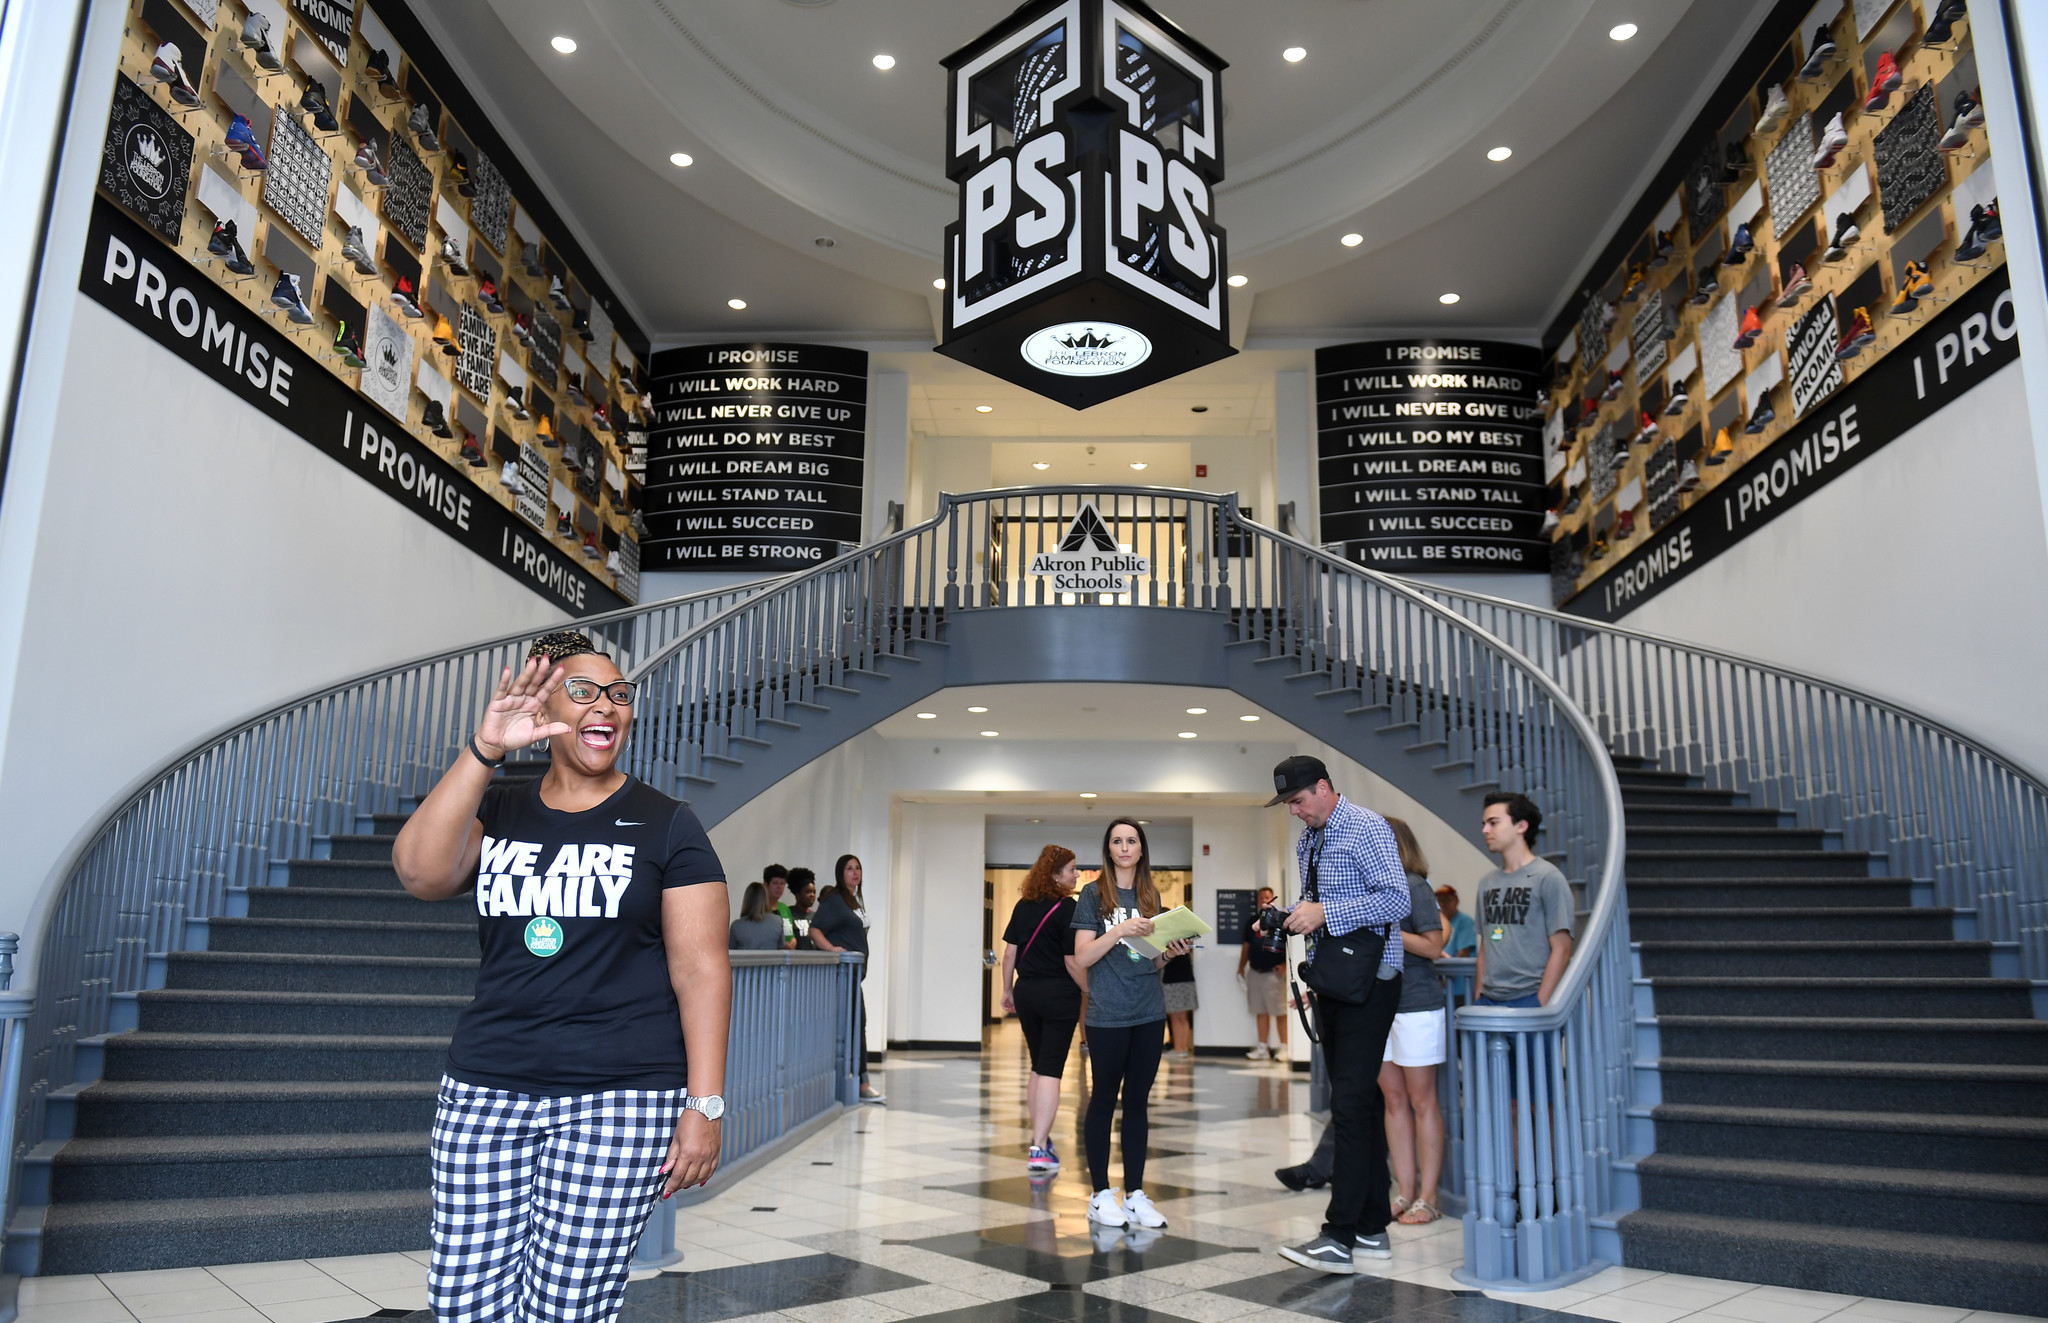 AKRON, OHIO JULY 29TH 2018-School principal Brandi Davis waves in the lobby of the I PROMISE School